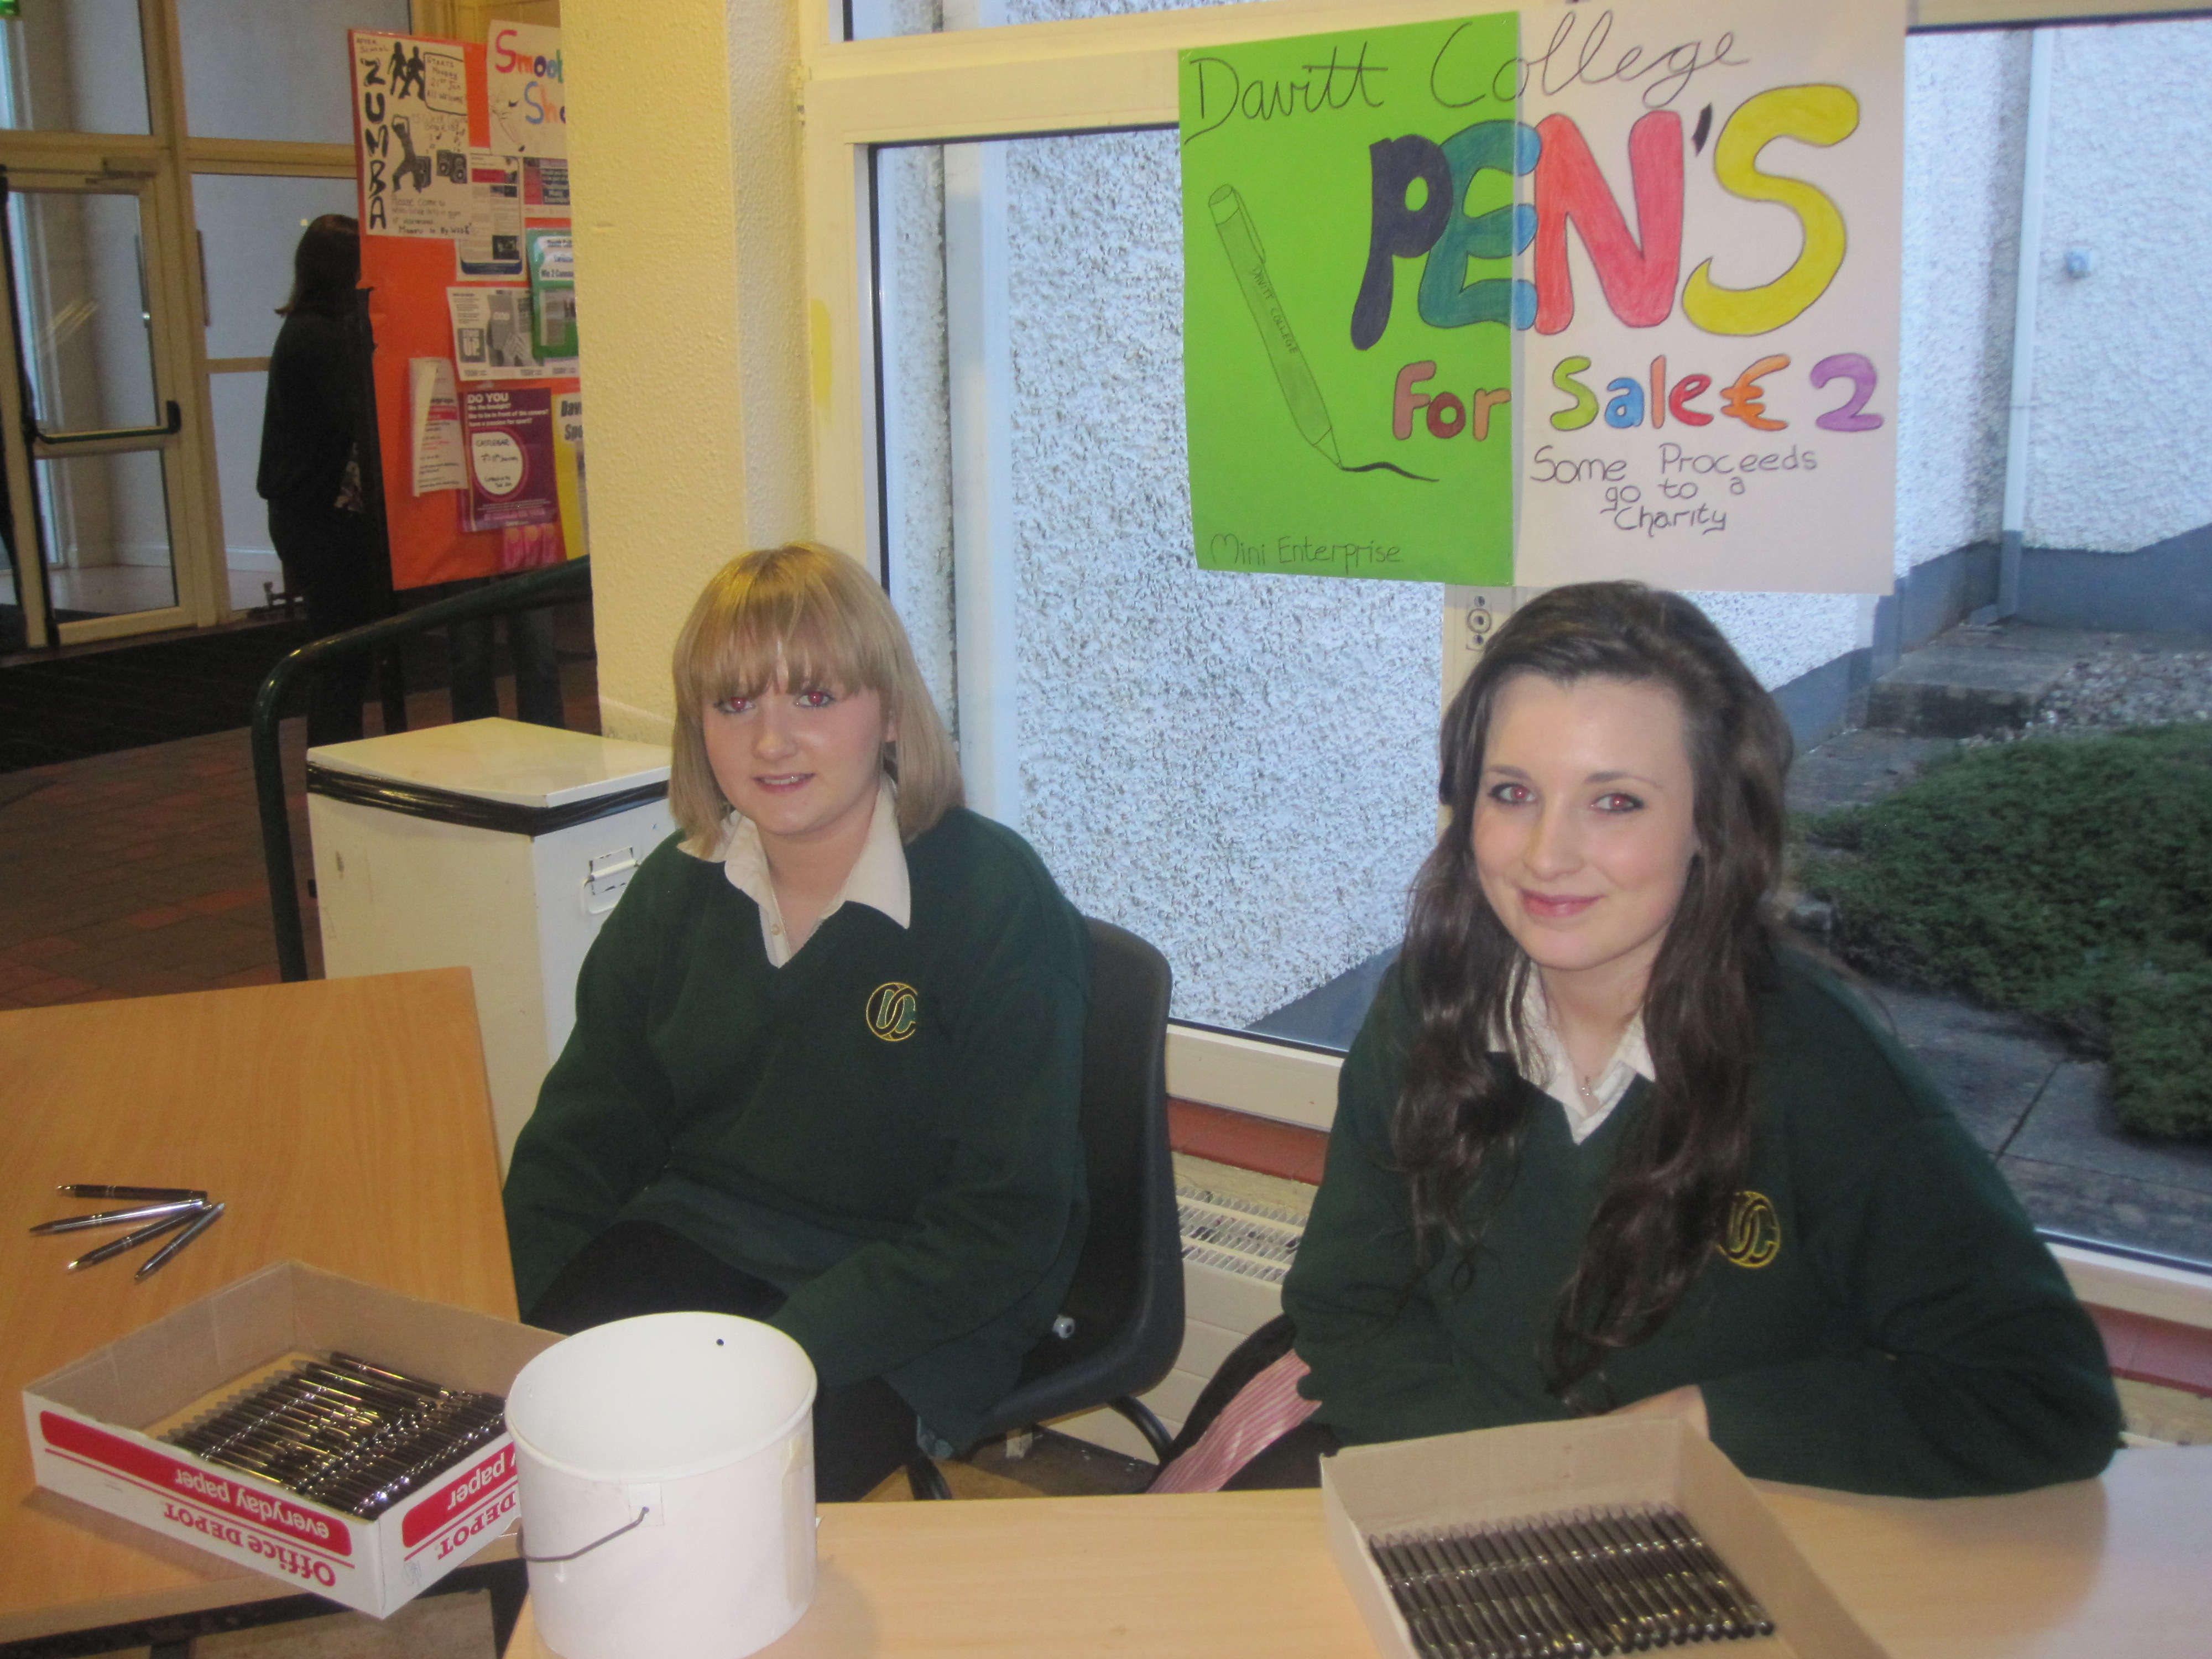 Transition Year students Melanie Nally and Roisin O'Shea selling Davitt College pens as part of their mini-company enterprise project. Pens cost €2 each!